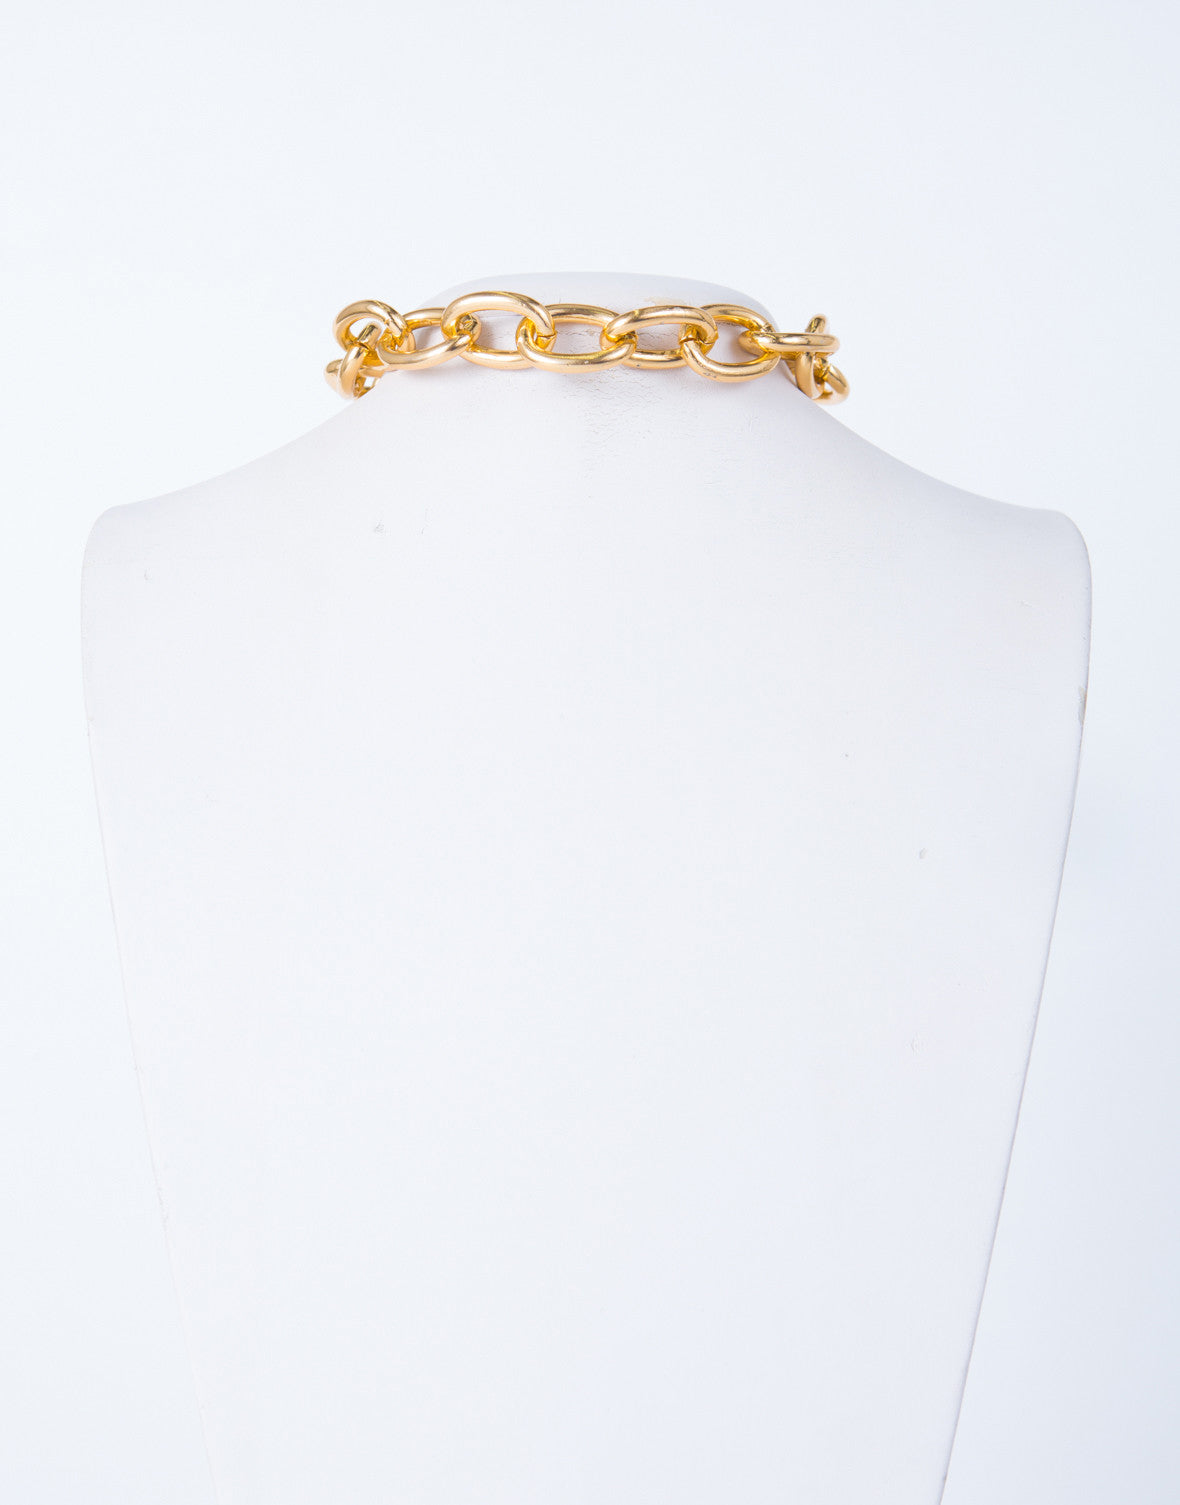 Linked Together Choker